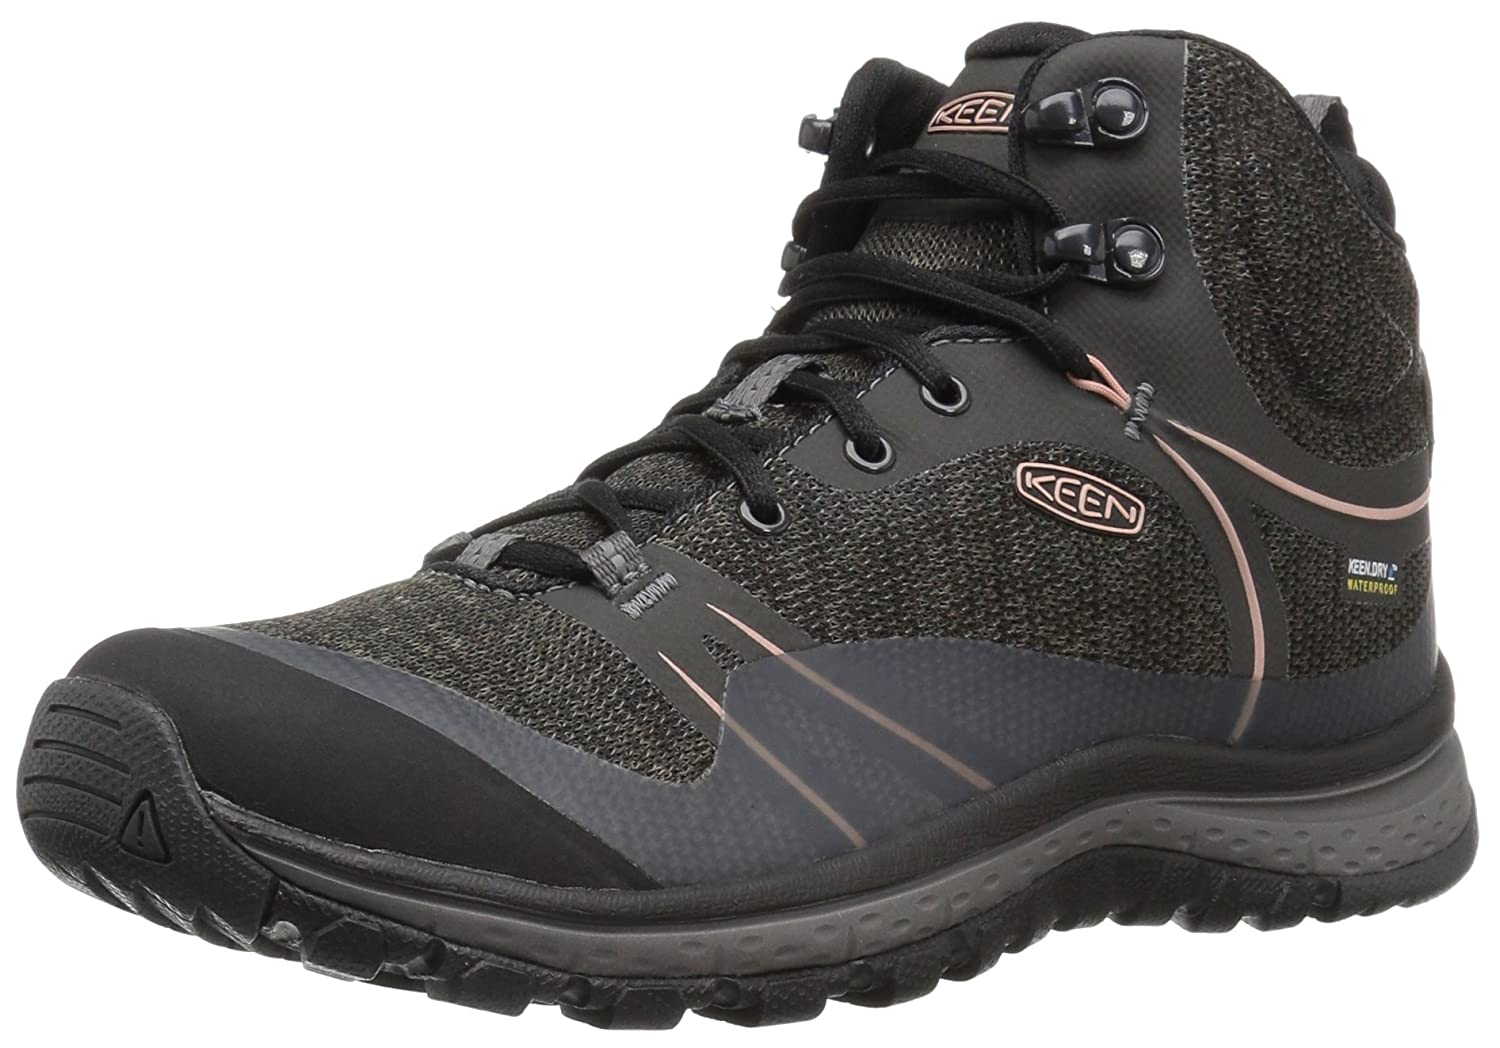 Keen Women's TERRADORA MID WP Hiking Boots 1016502